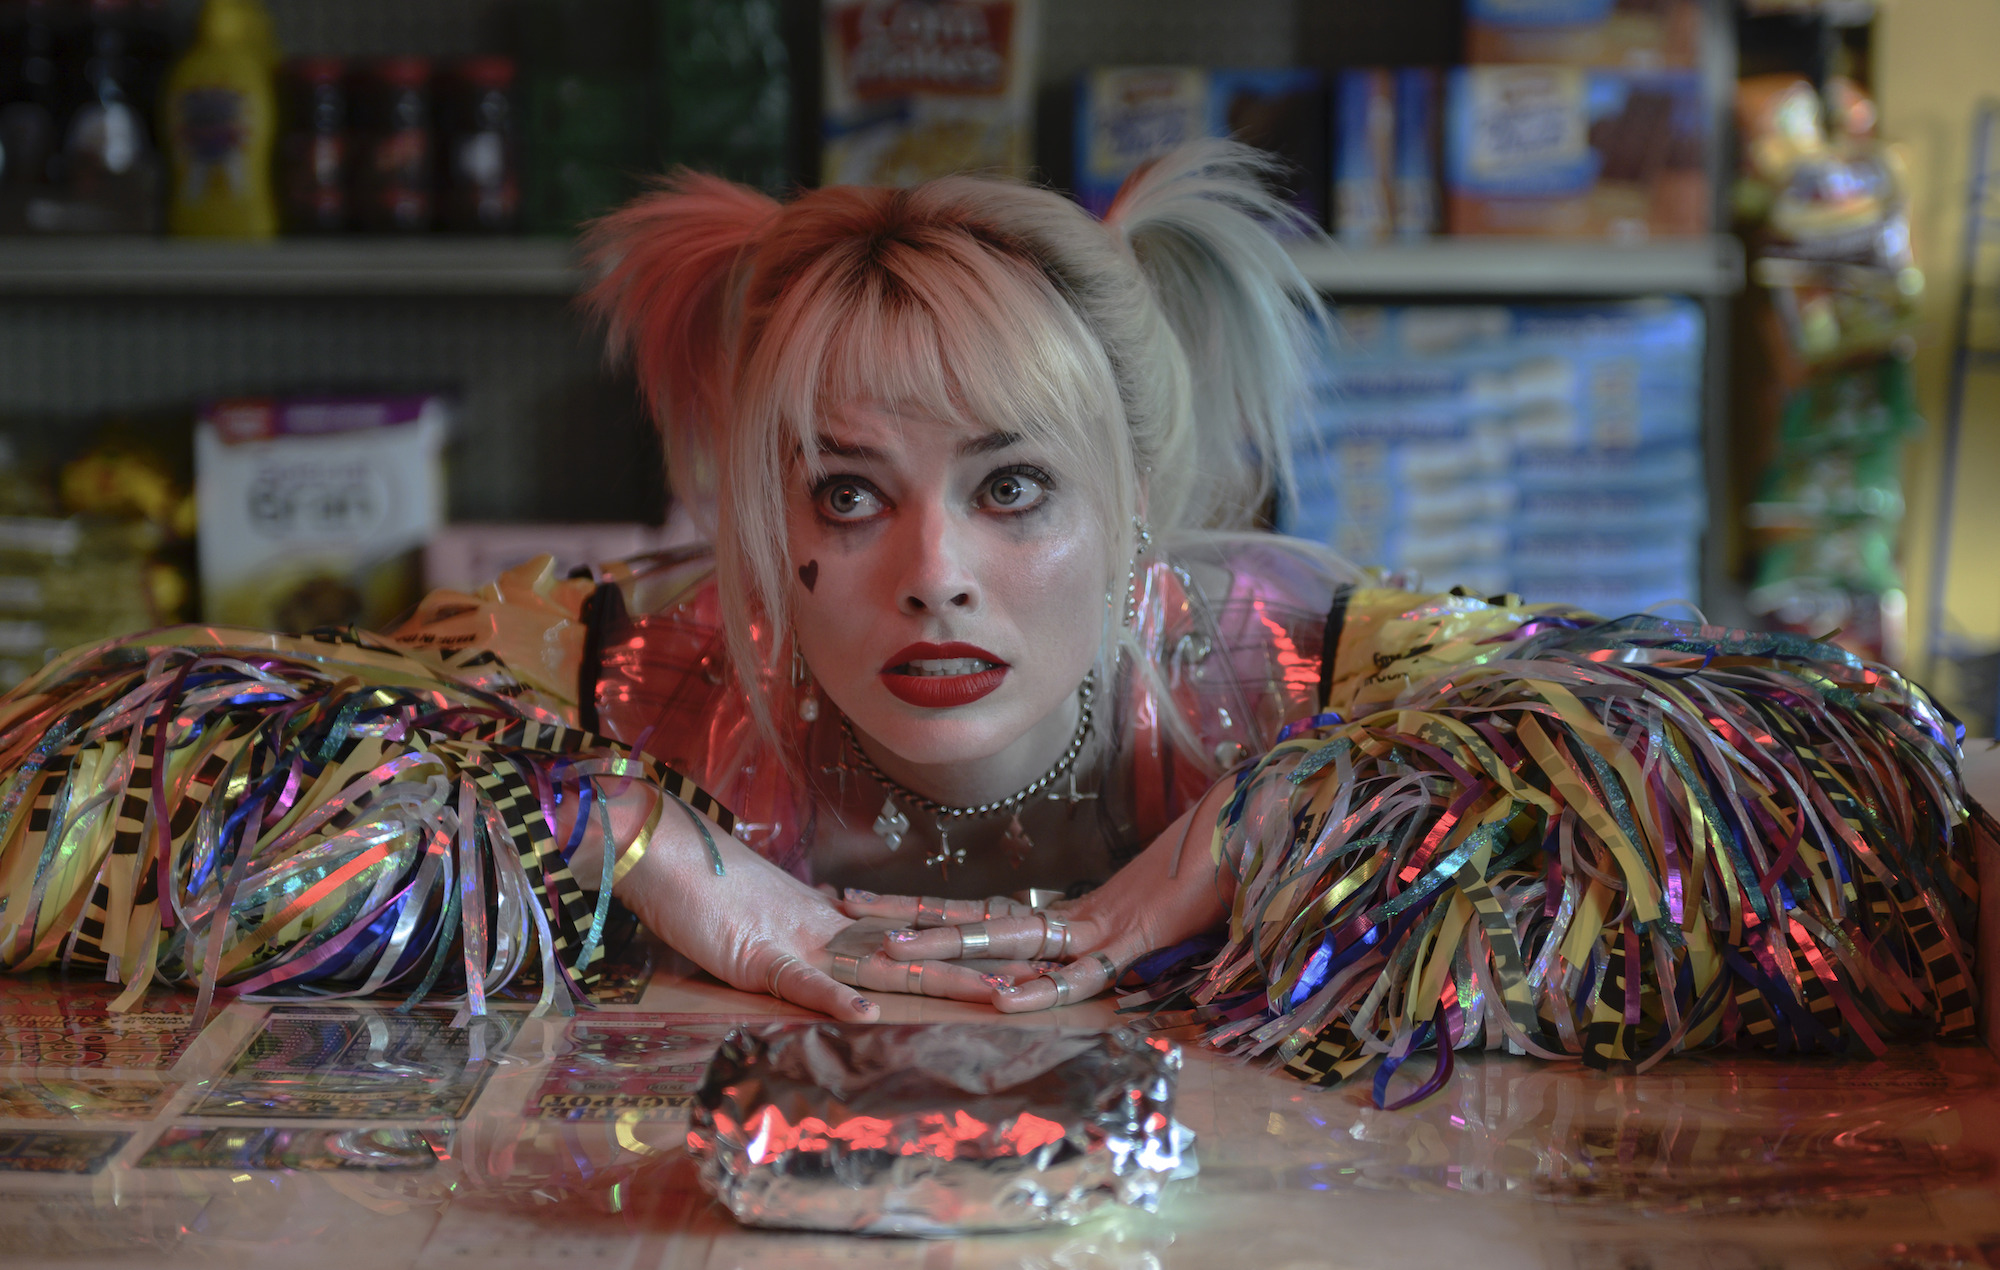 Birds Of Prey Post Credits Scene What Does It Mean For Harley Quinn